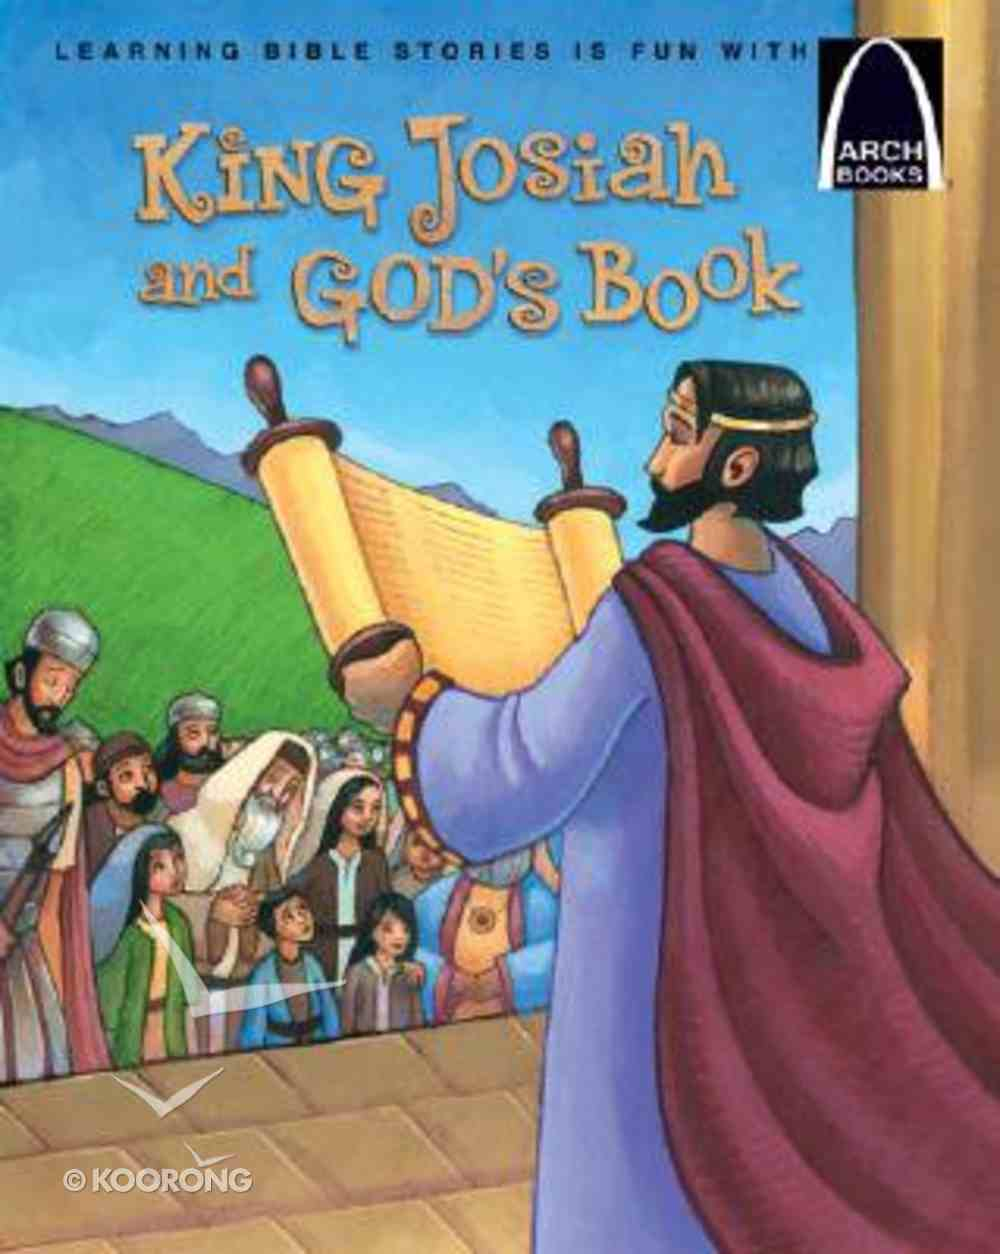 Arch Books: King Josiah and God's Book Paperback